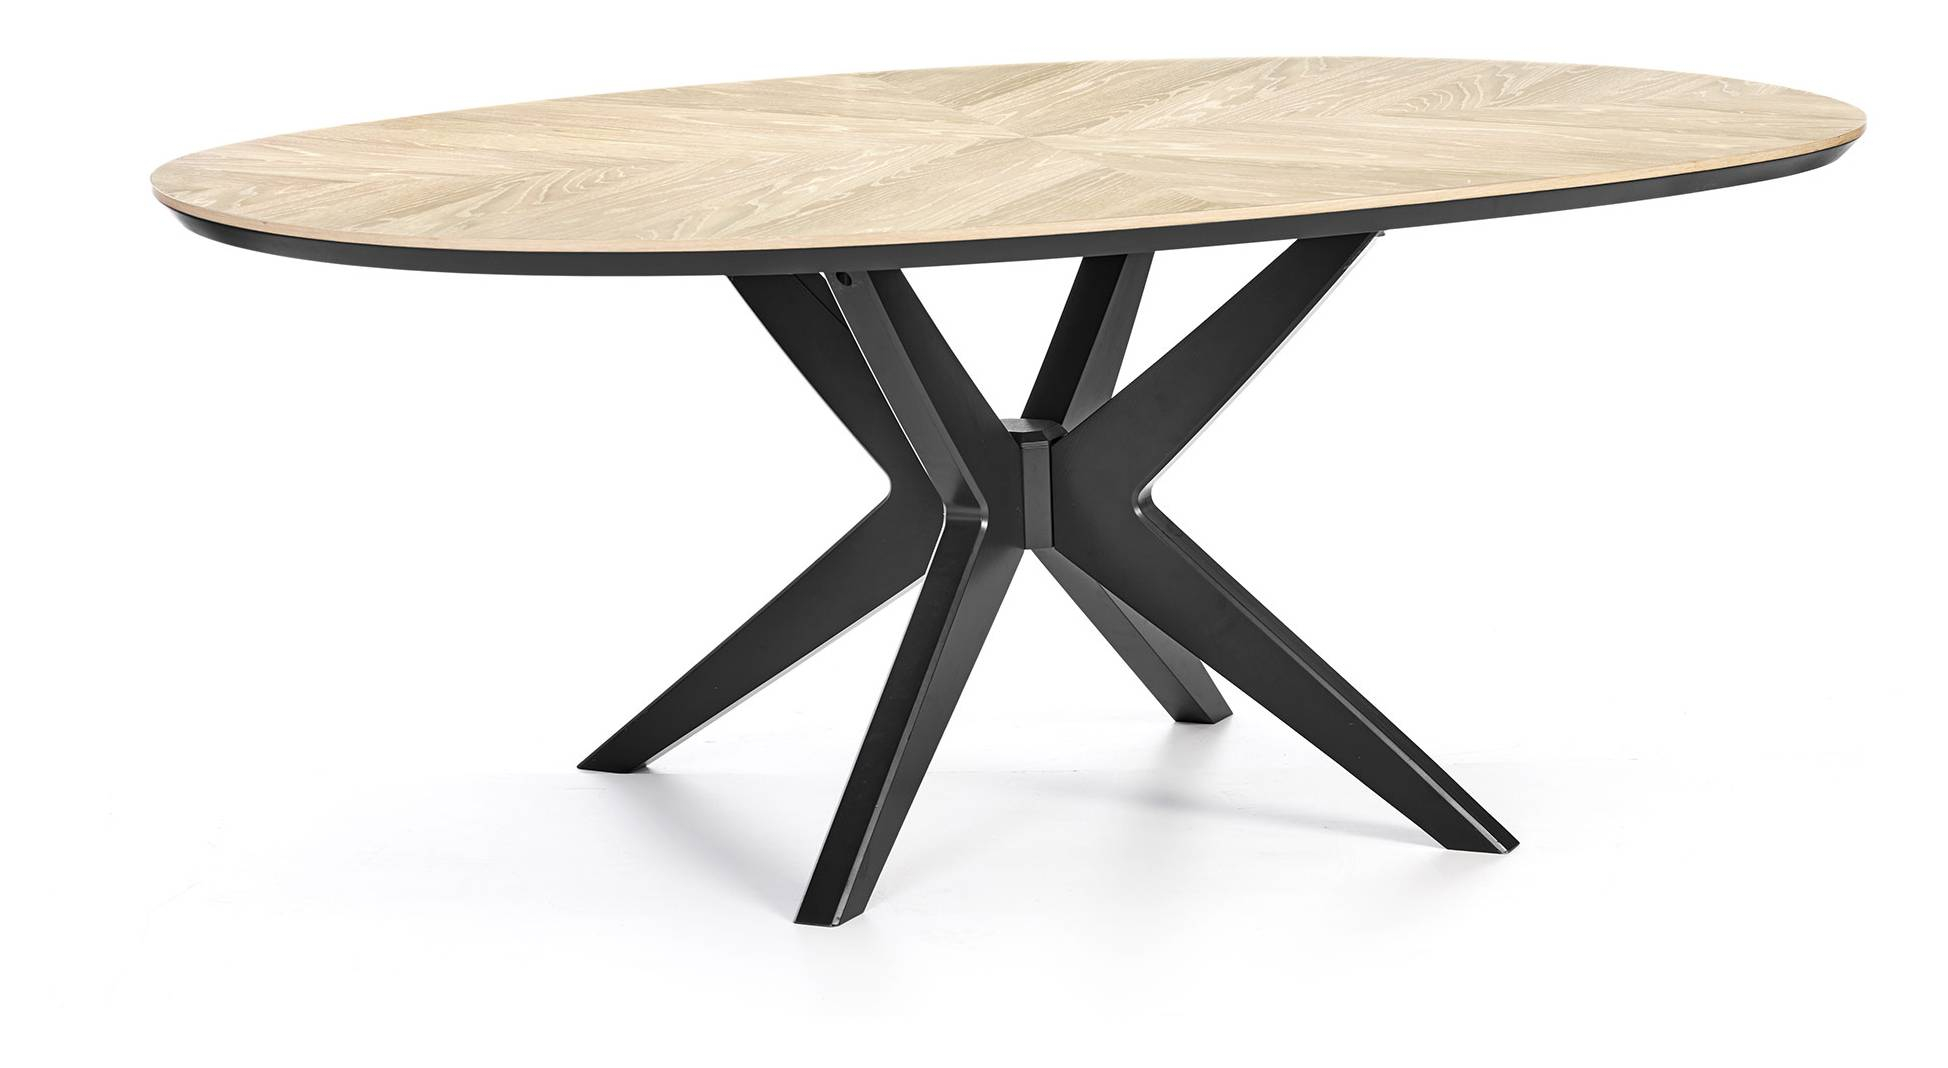 Quebec Elliptical Dining Table pertaining to measurements 1948 X 1068